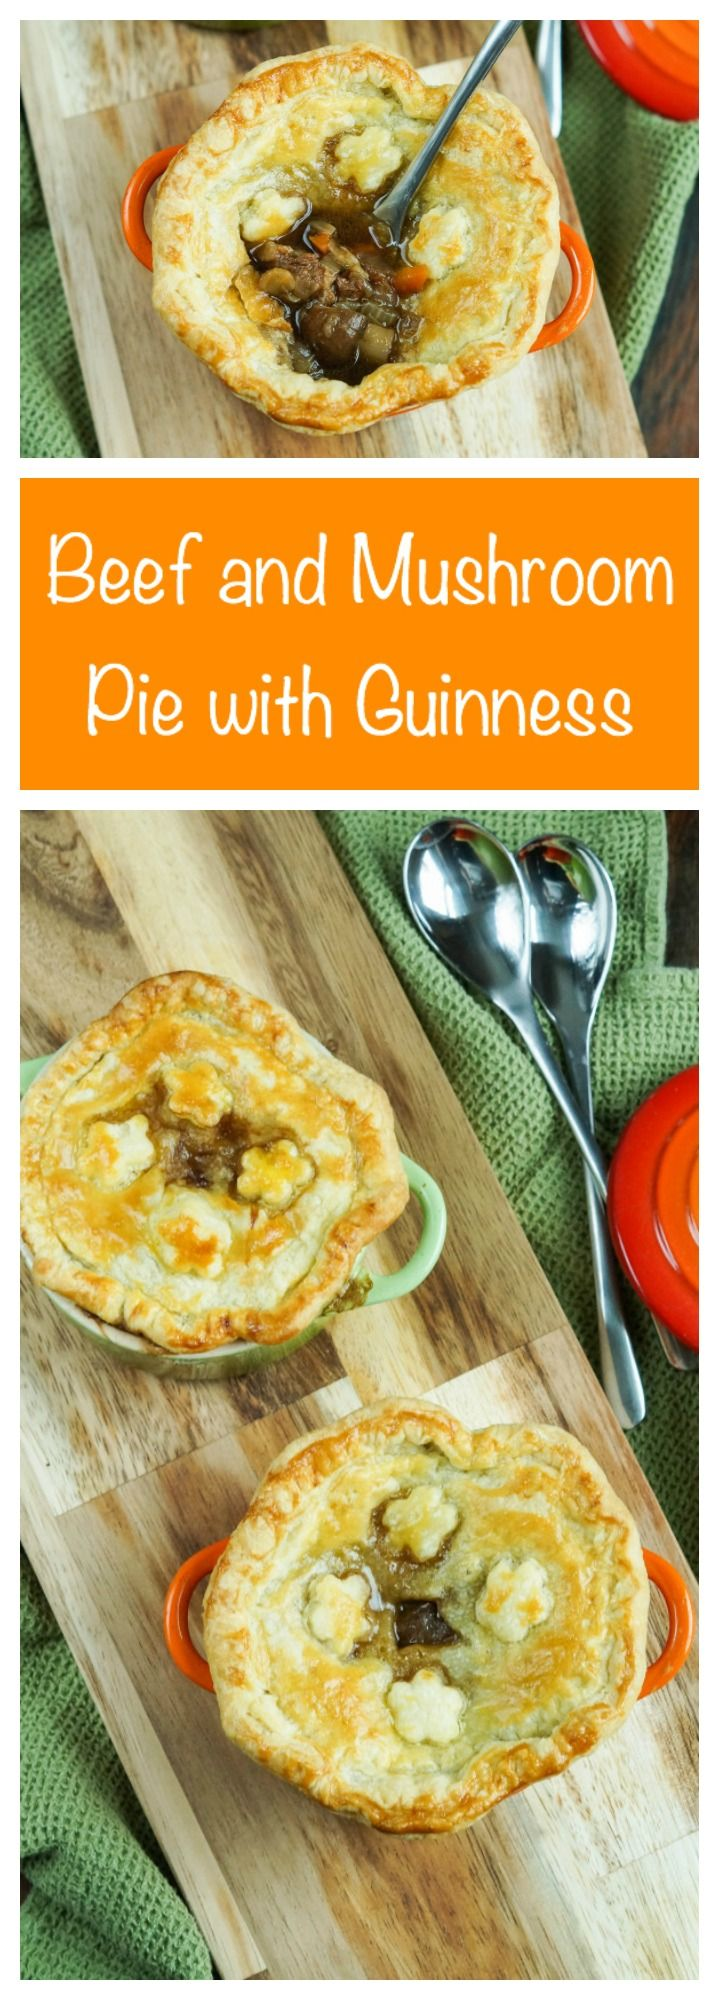 Beef and Mushroom Pie with Guinness from The Best of Irish Country Cooking